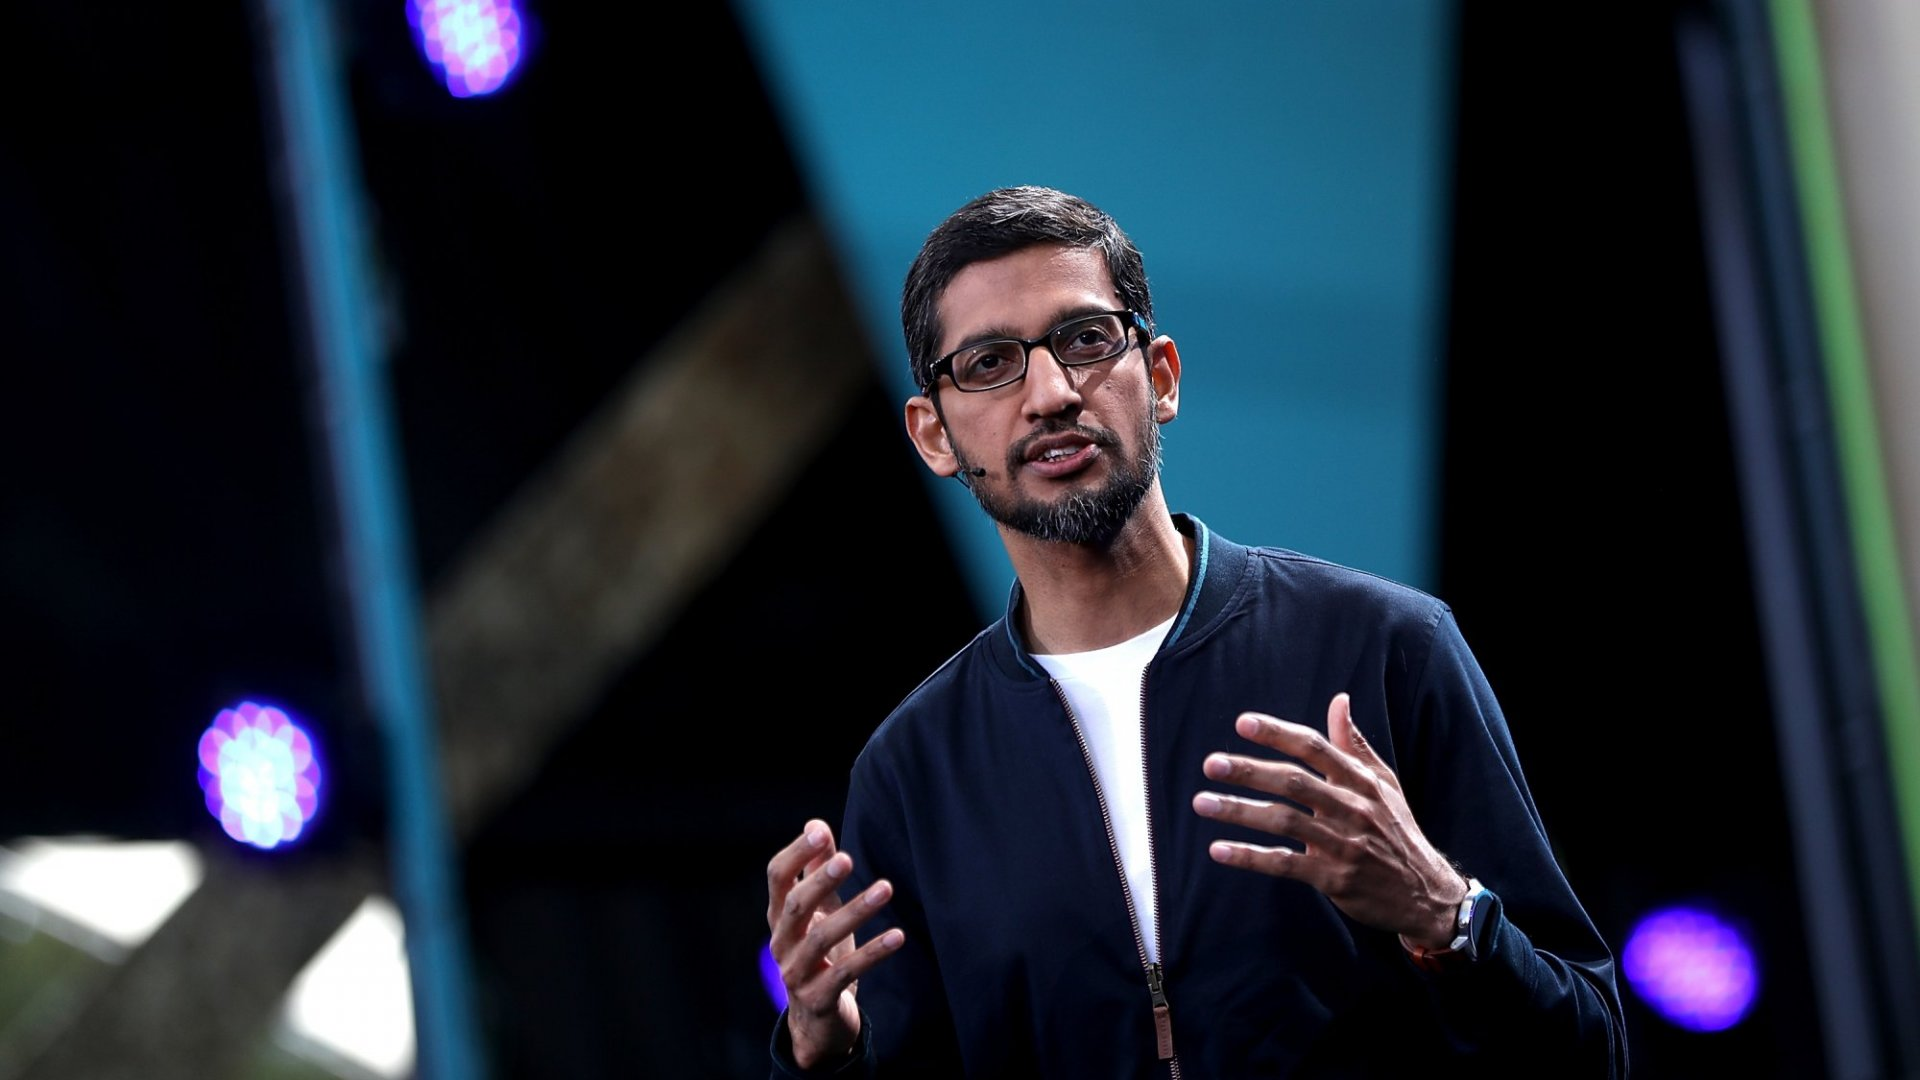 Google CEO Sundar Pichai speaks during Google I/O 2016 in Mountain View, California. (Photo by Justin Sullivan/Getty Images)